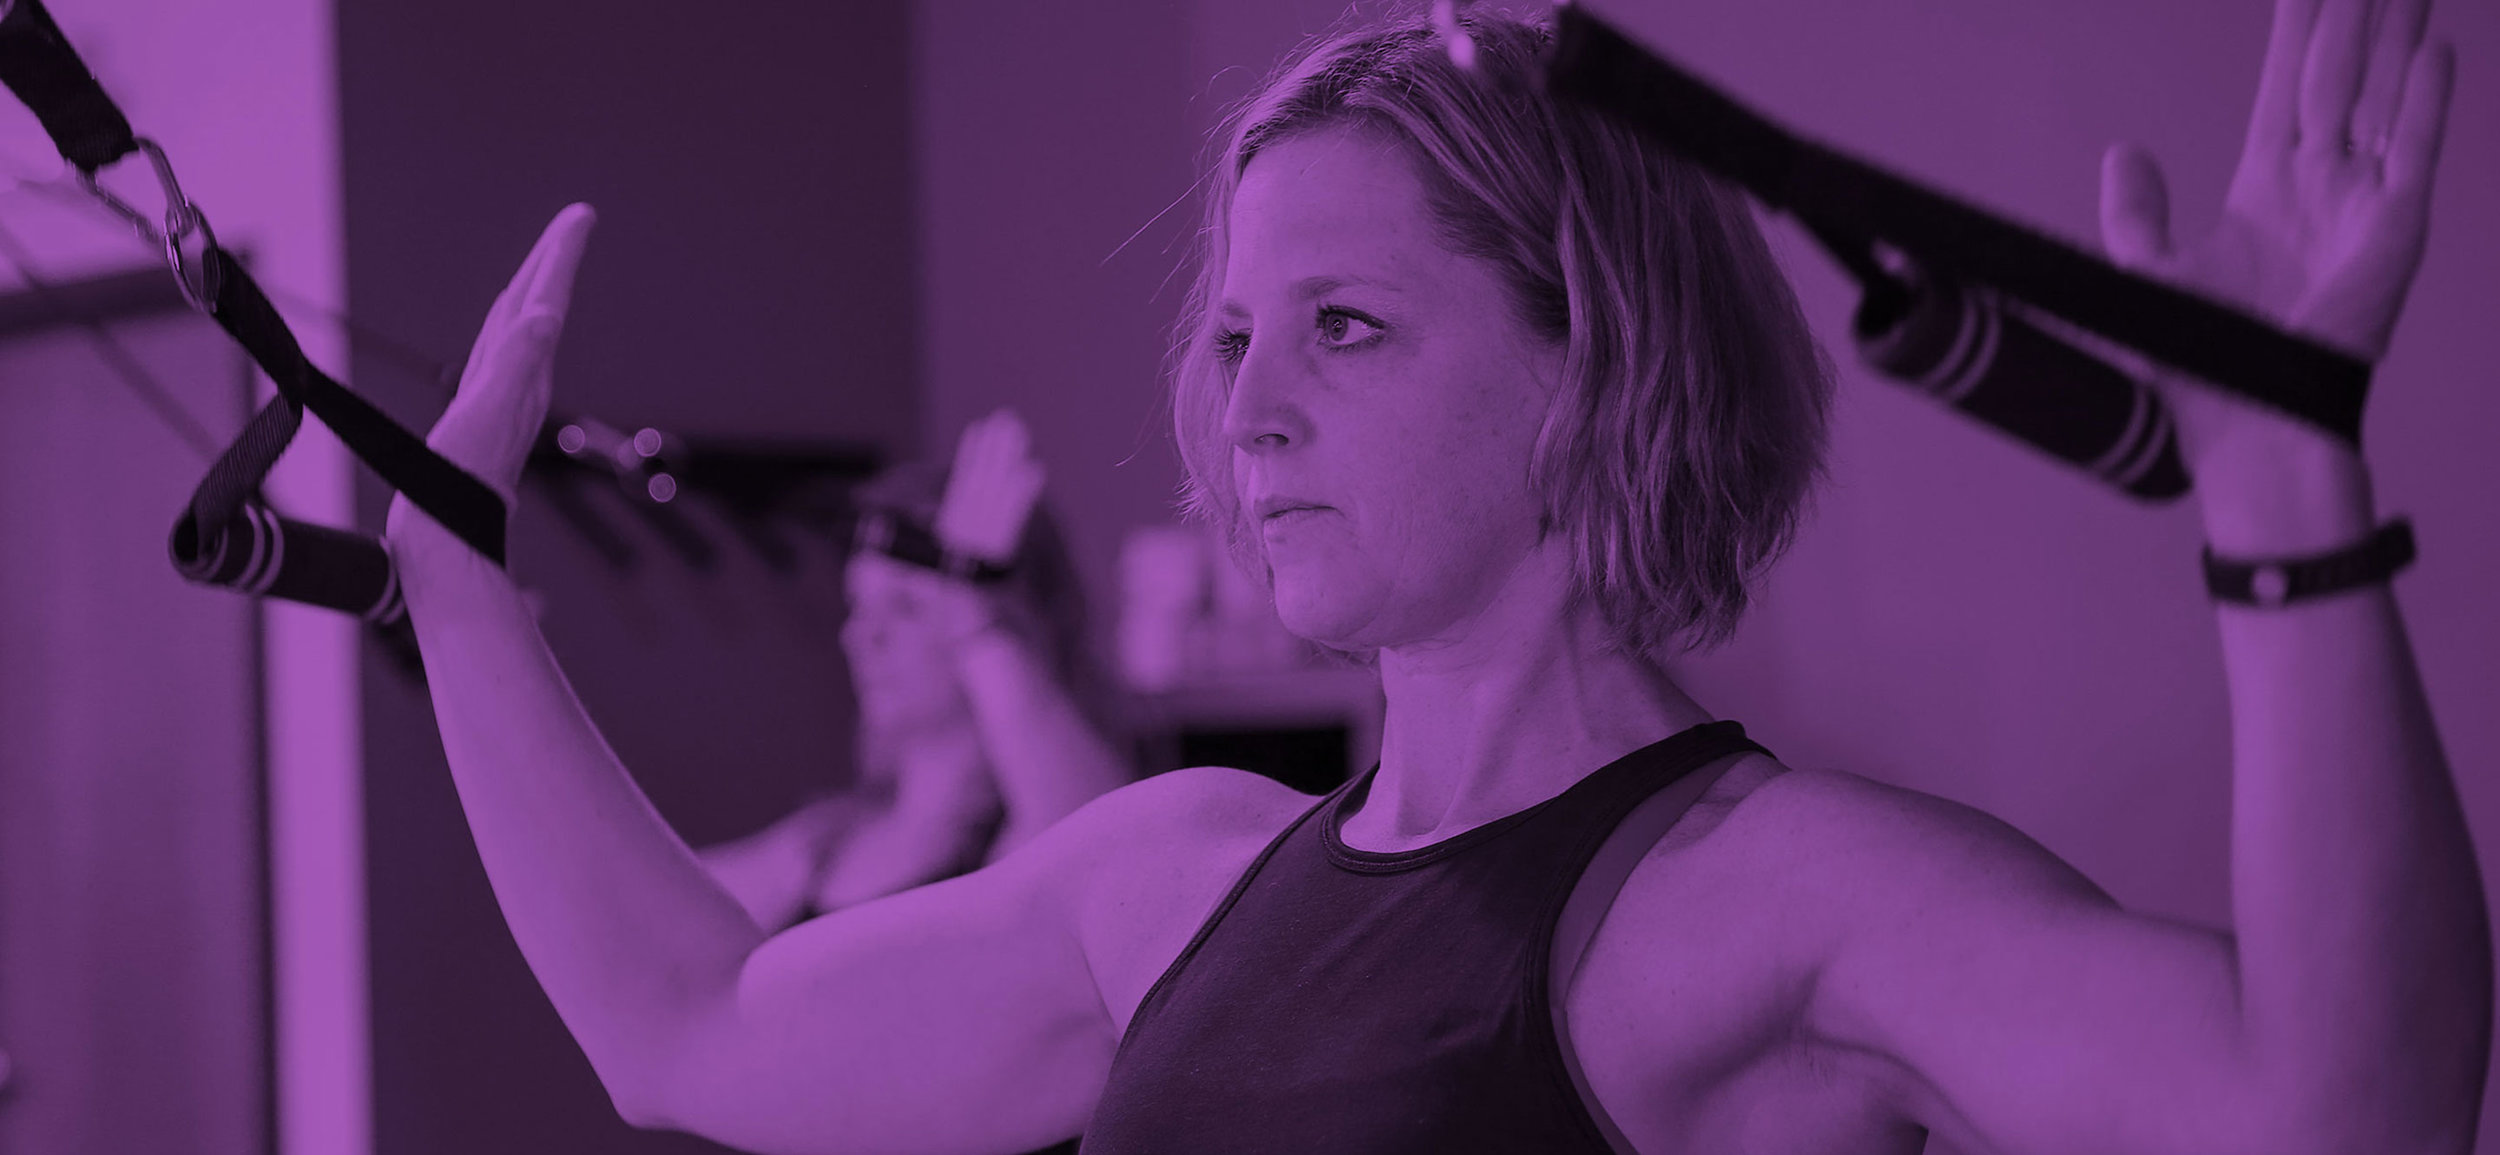 PILATES CONTINUING EDUCATION FOR HEALTH PROFESSIONALS -